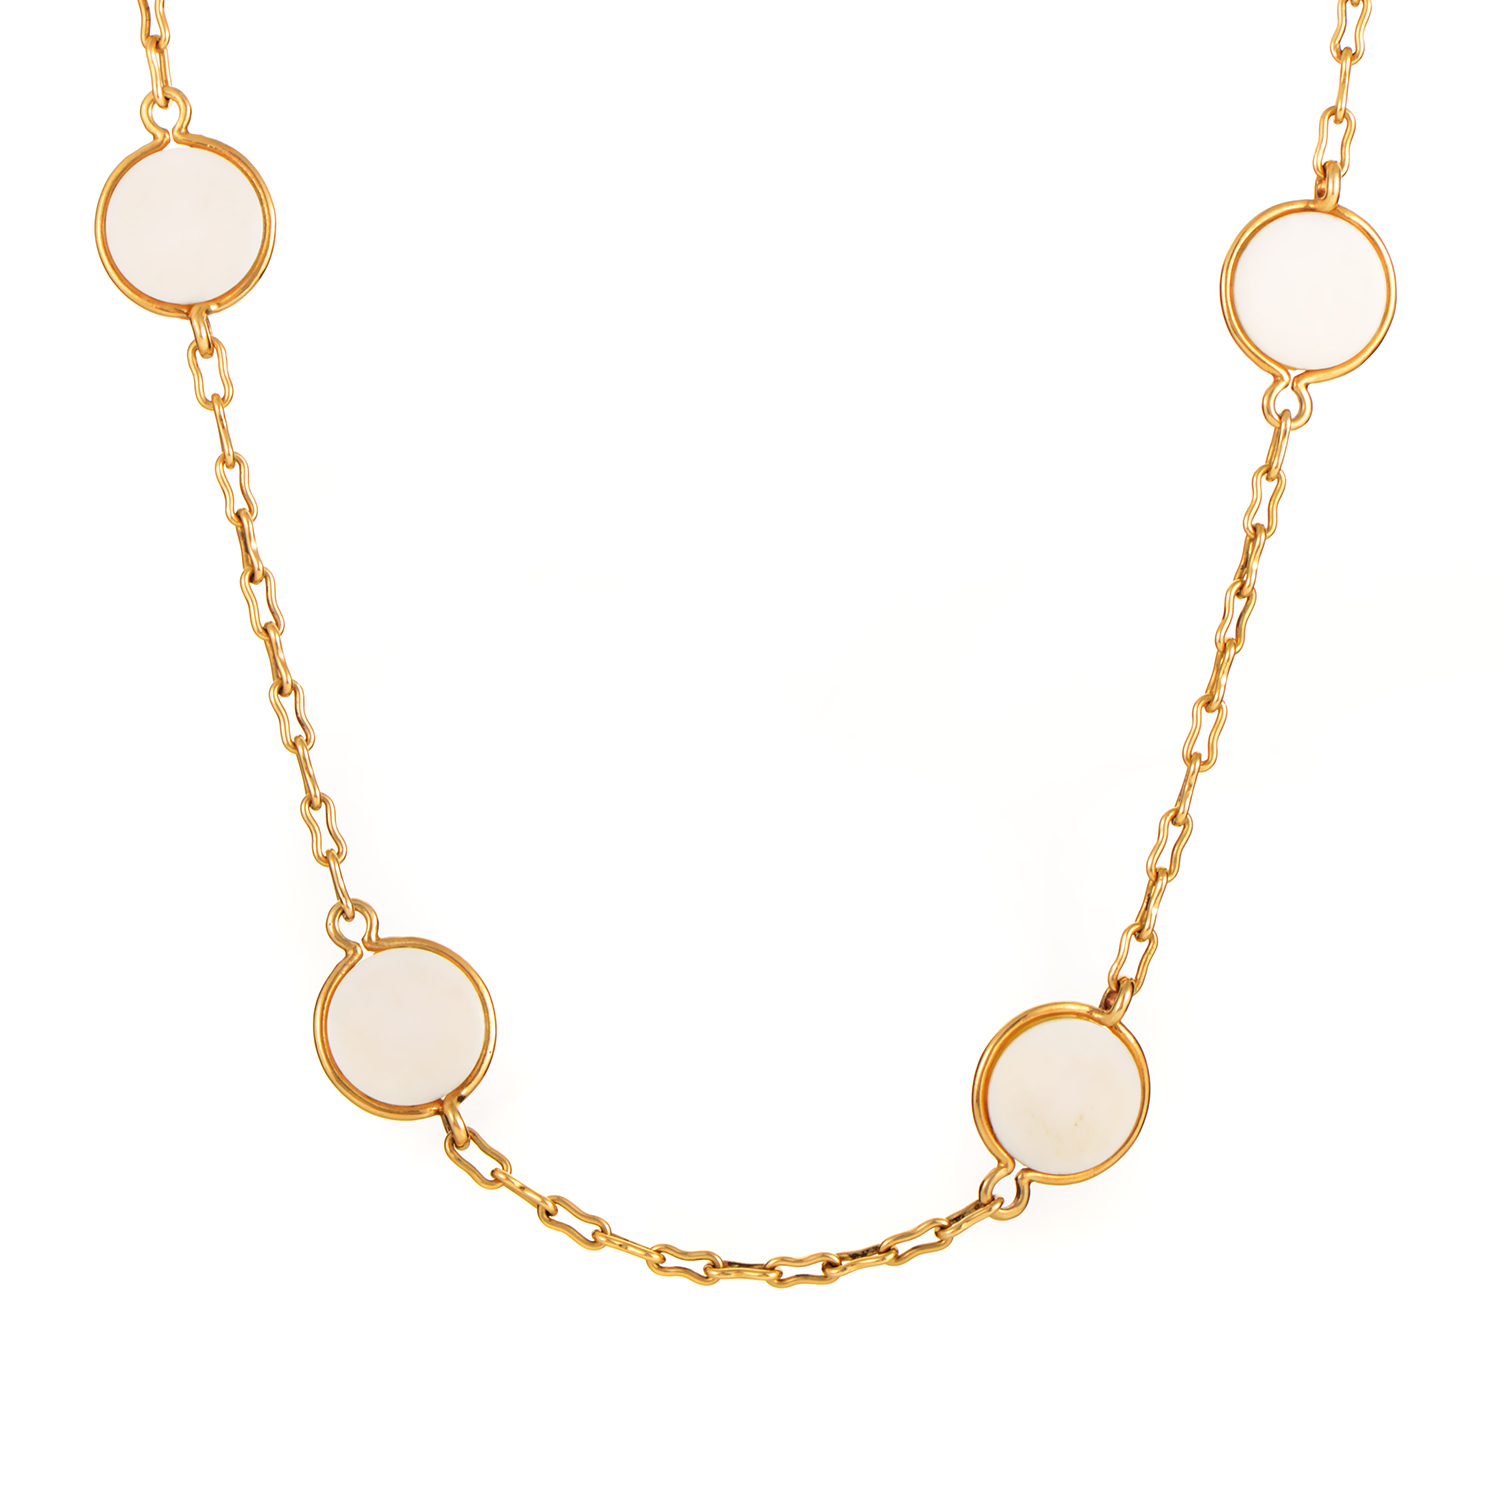 Van Cleef & Arpels Vintage 18K Yellow Gold & Ivory Necklace